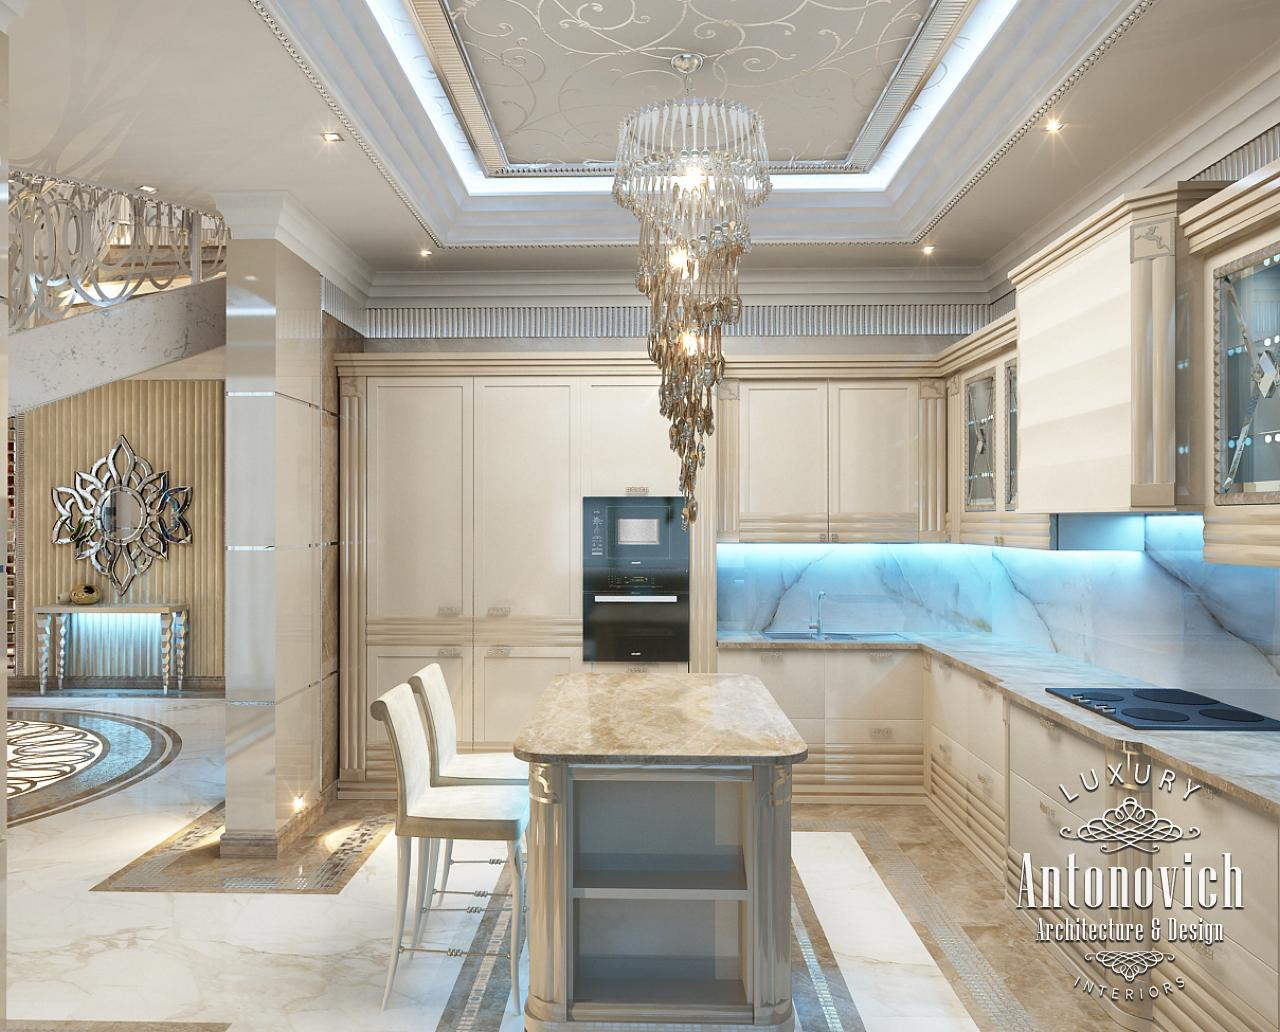 Luxury antonovich design uae luxury interior design dubai from katrina antonovich - Interior desinge ...